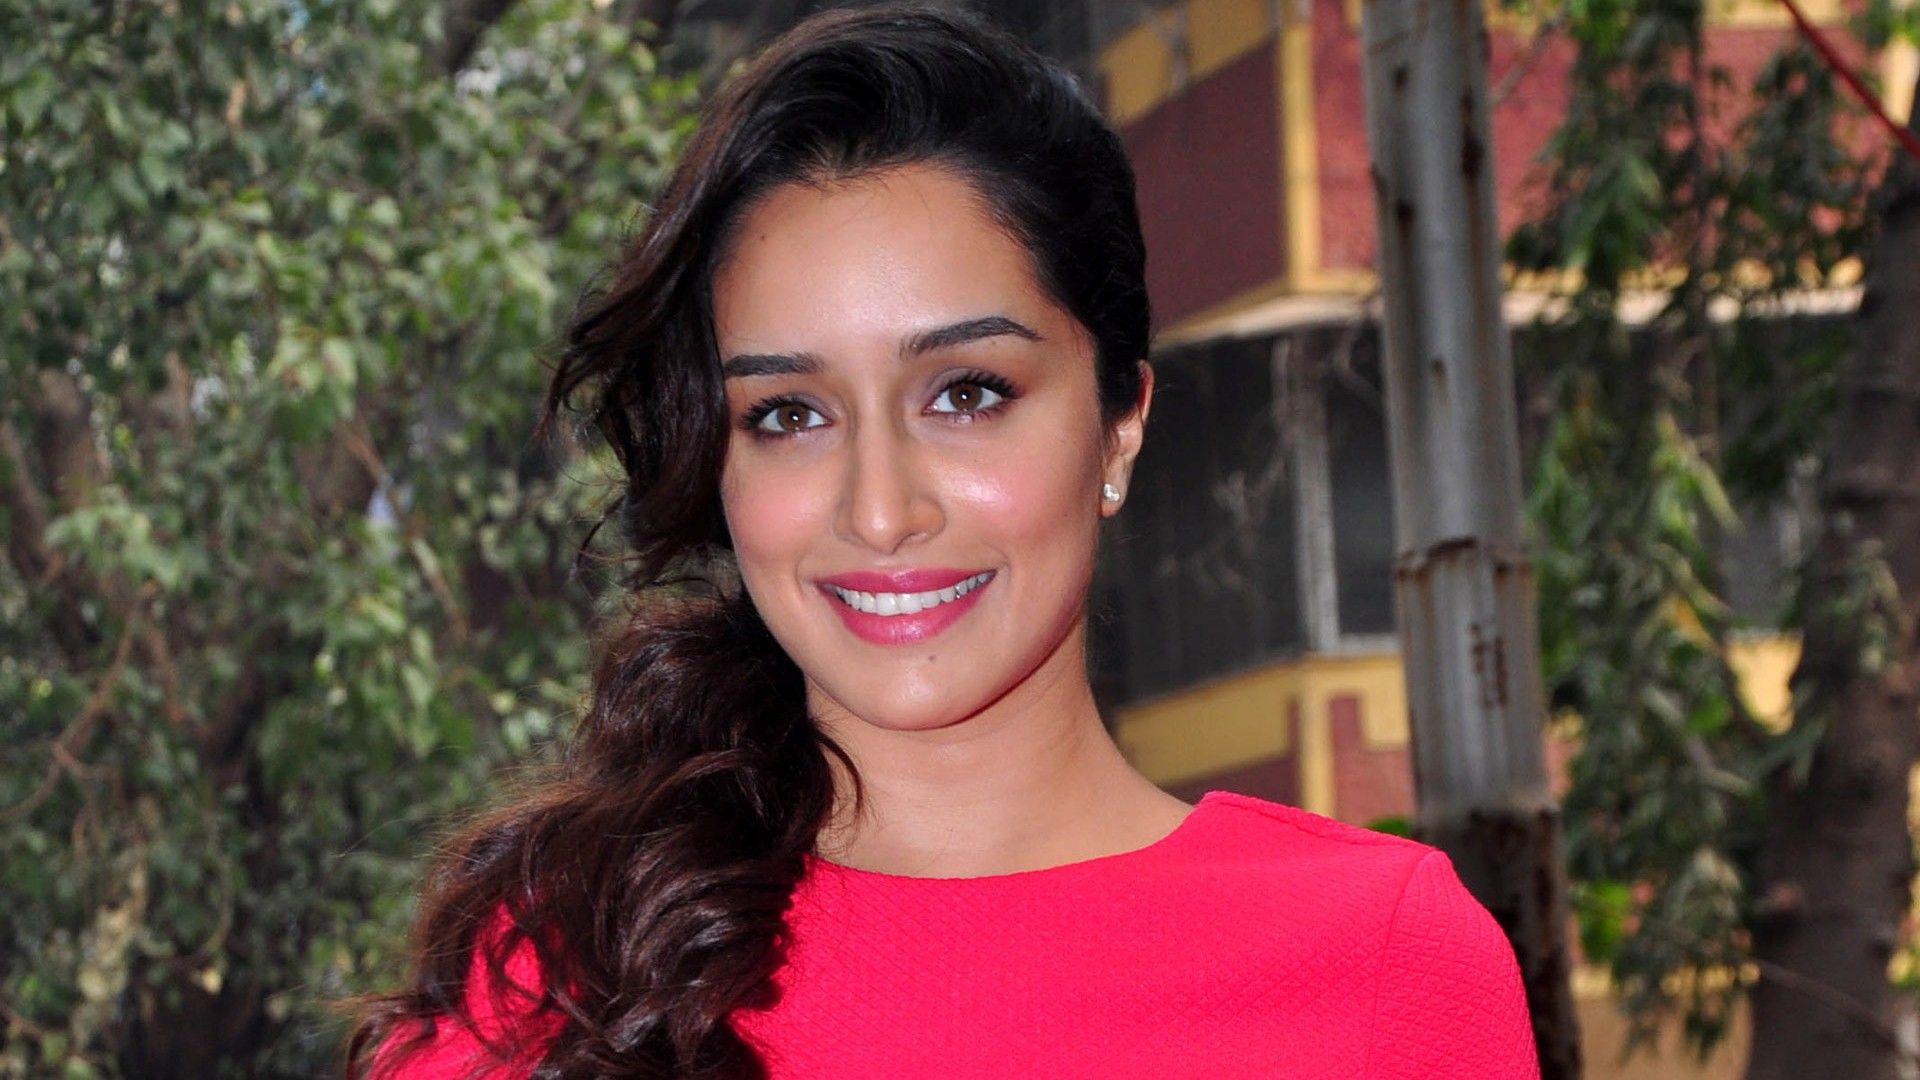 Shraddha Kapoor Wallpapers HD Download p Color Full HD 1024 1920x1080